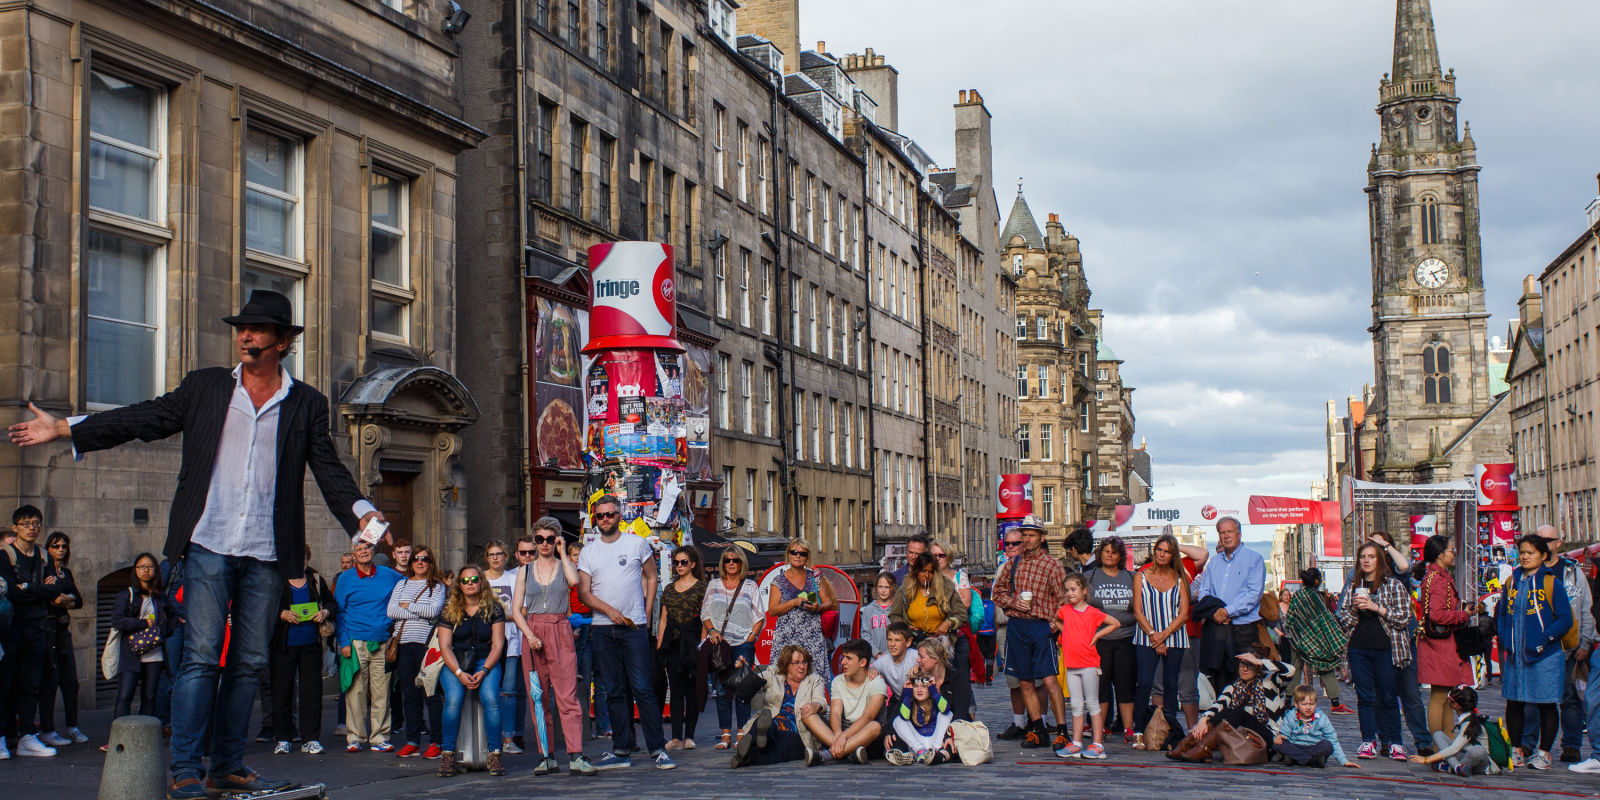 The Funniest Jokes Of The Edinburgh Fringe Festival 2016